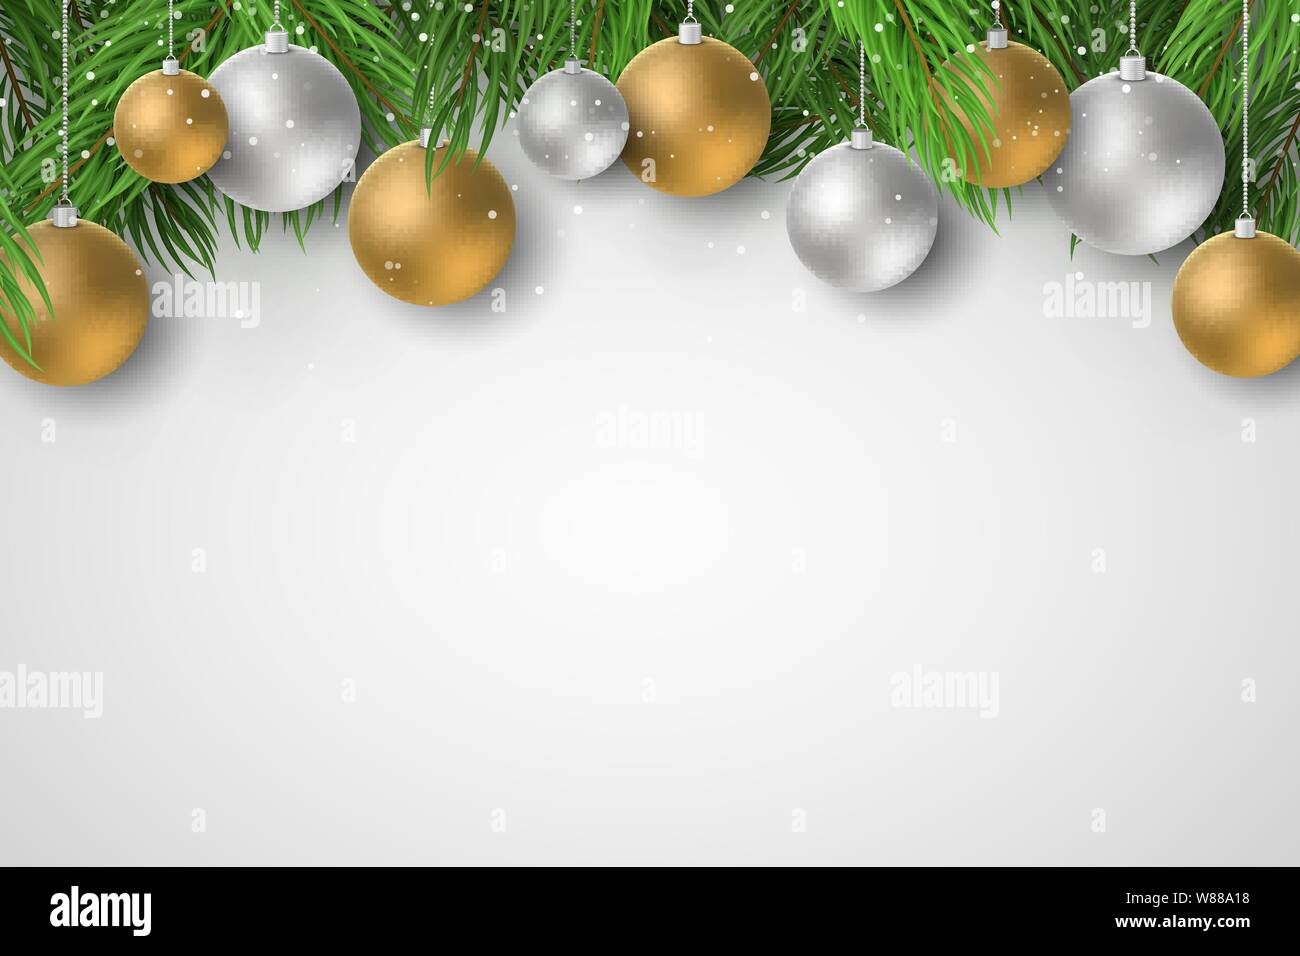 Festive template for Merry Christmas and Happy New Year 2020. Fir